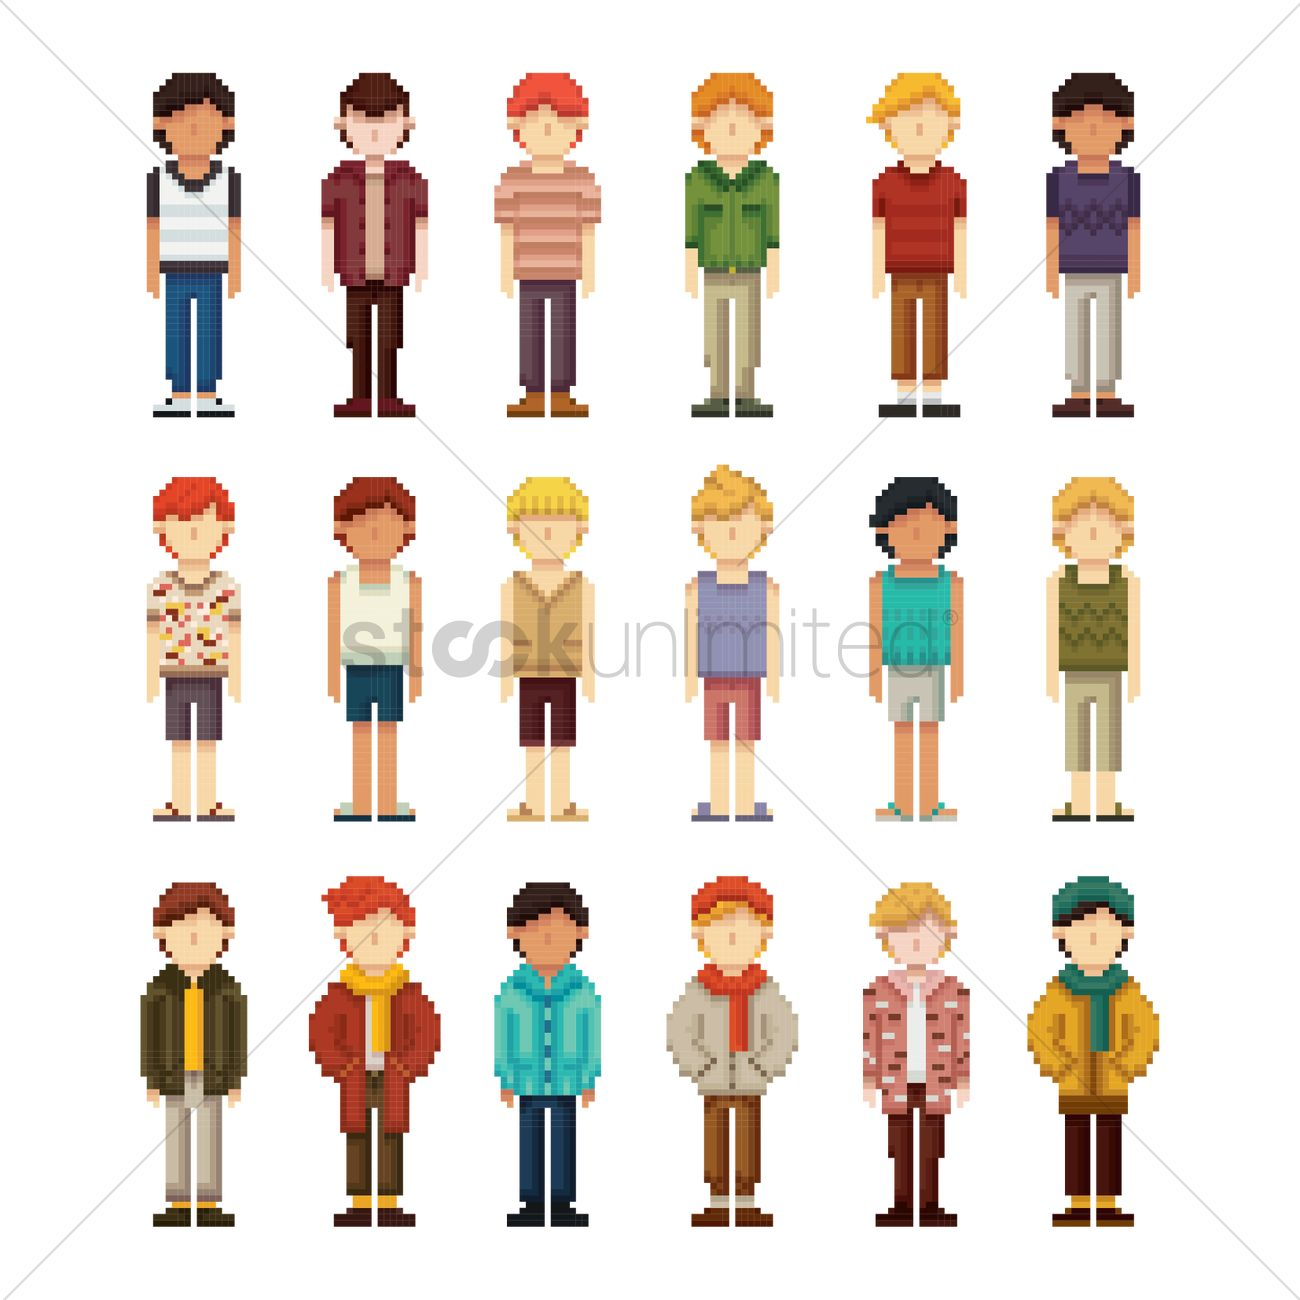 Set of pixel art men fashion icons Vector Image - 1957529 ...